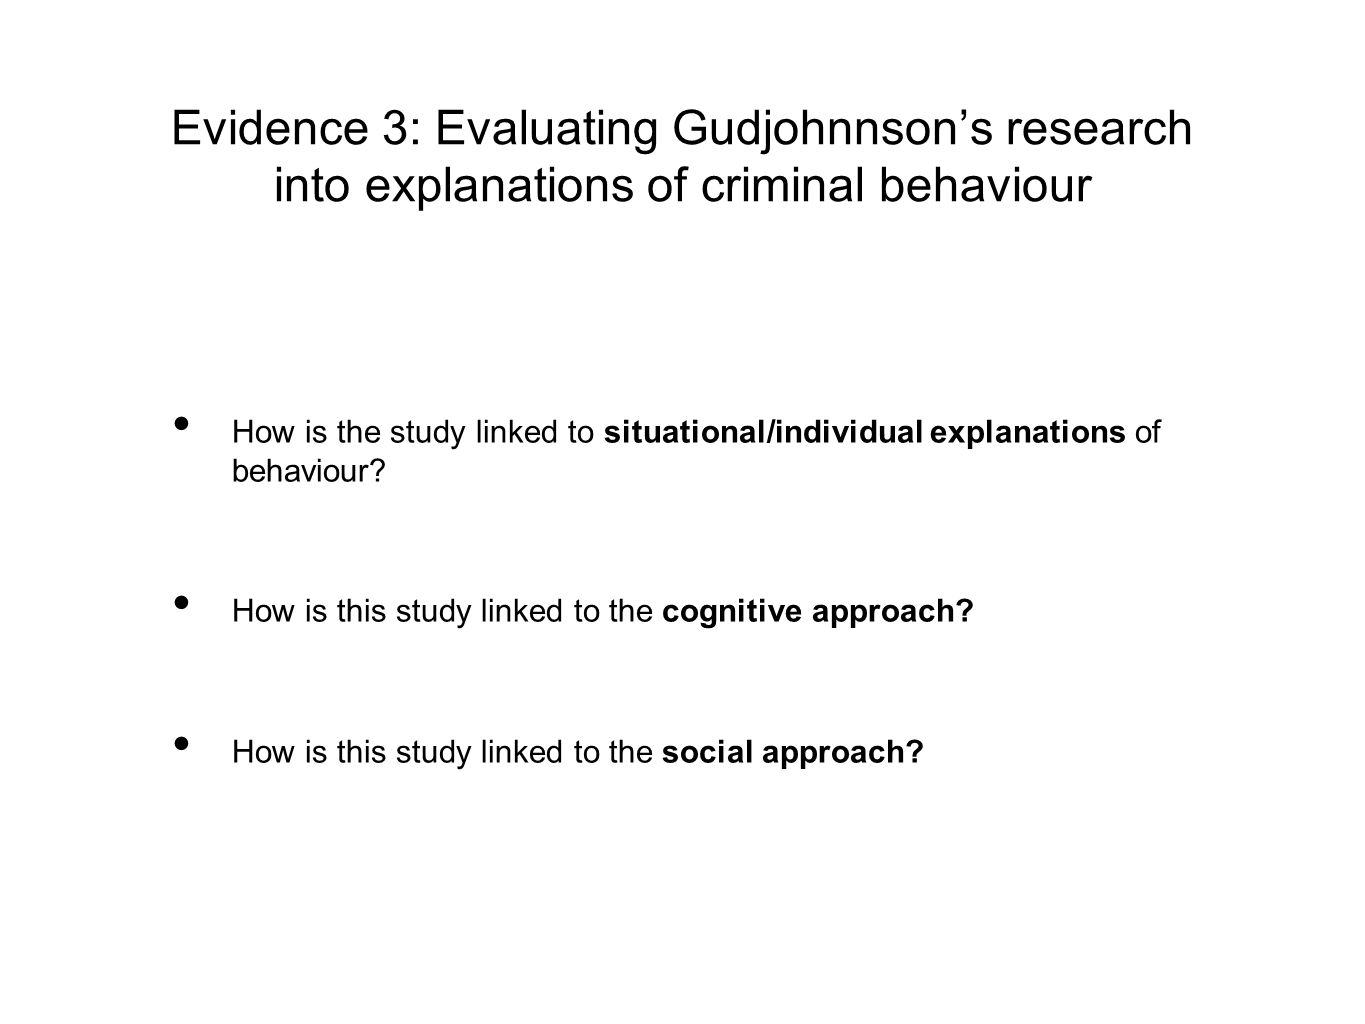 Evidence 3: Evaluating Gudjohnnson's research into explanations of criminal behaviour